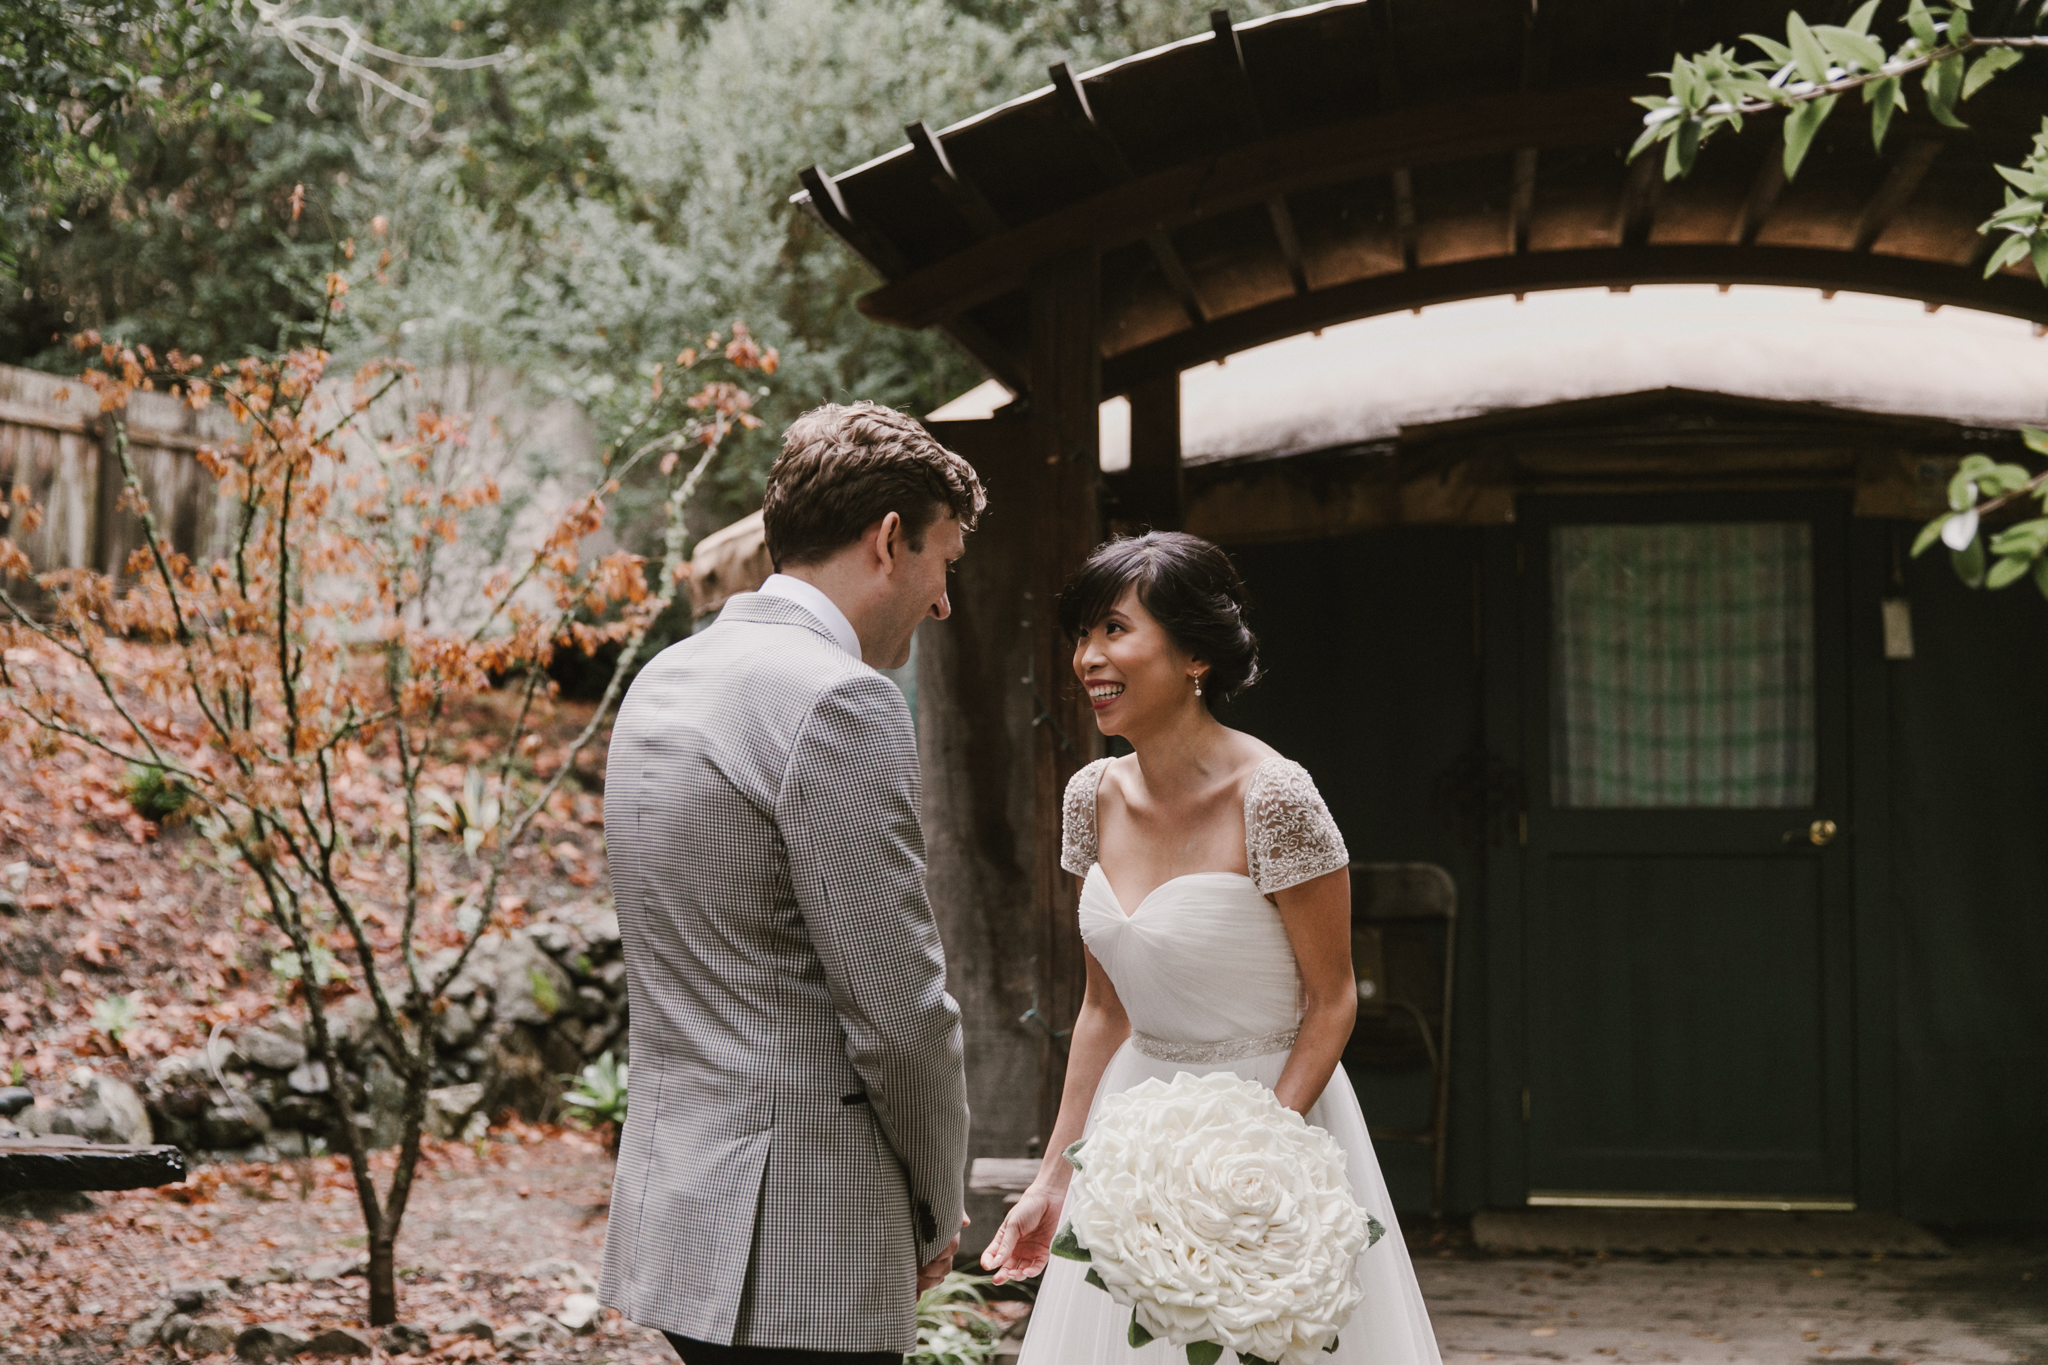 BIG SUR BAKERY WEDDING -10066